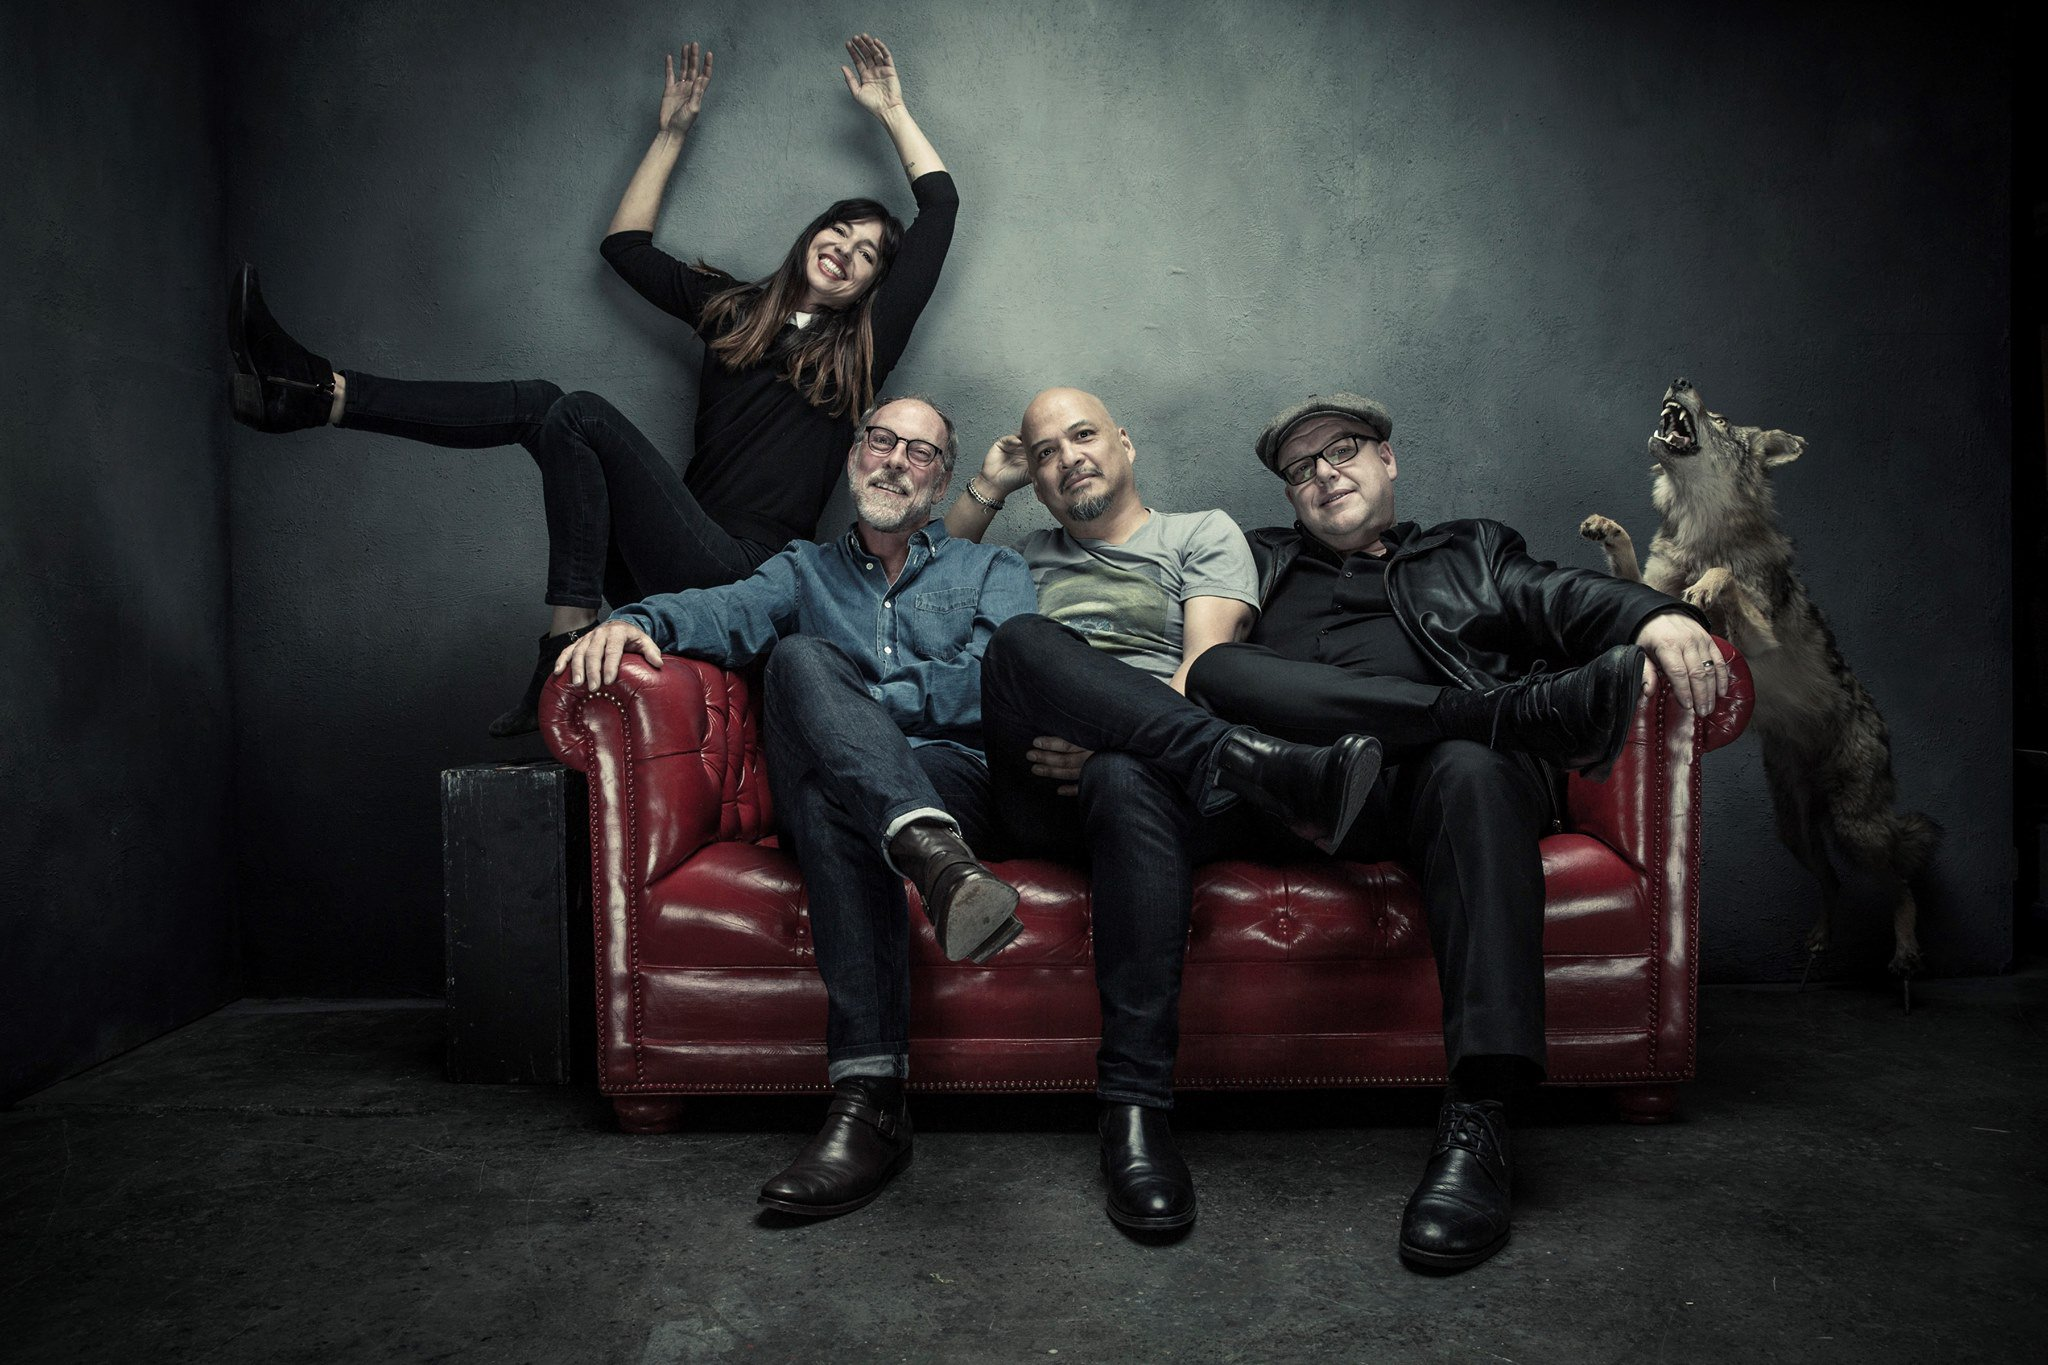 .@PIXIES are coming to @smithcollege thanks to @dspshows! Read about it at #LMNR: https://t.co/BUCh5Piet7 https://t.co/62j9qsLl2Z